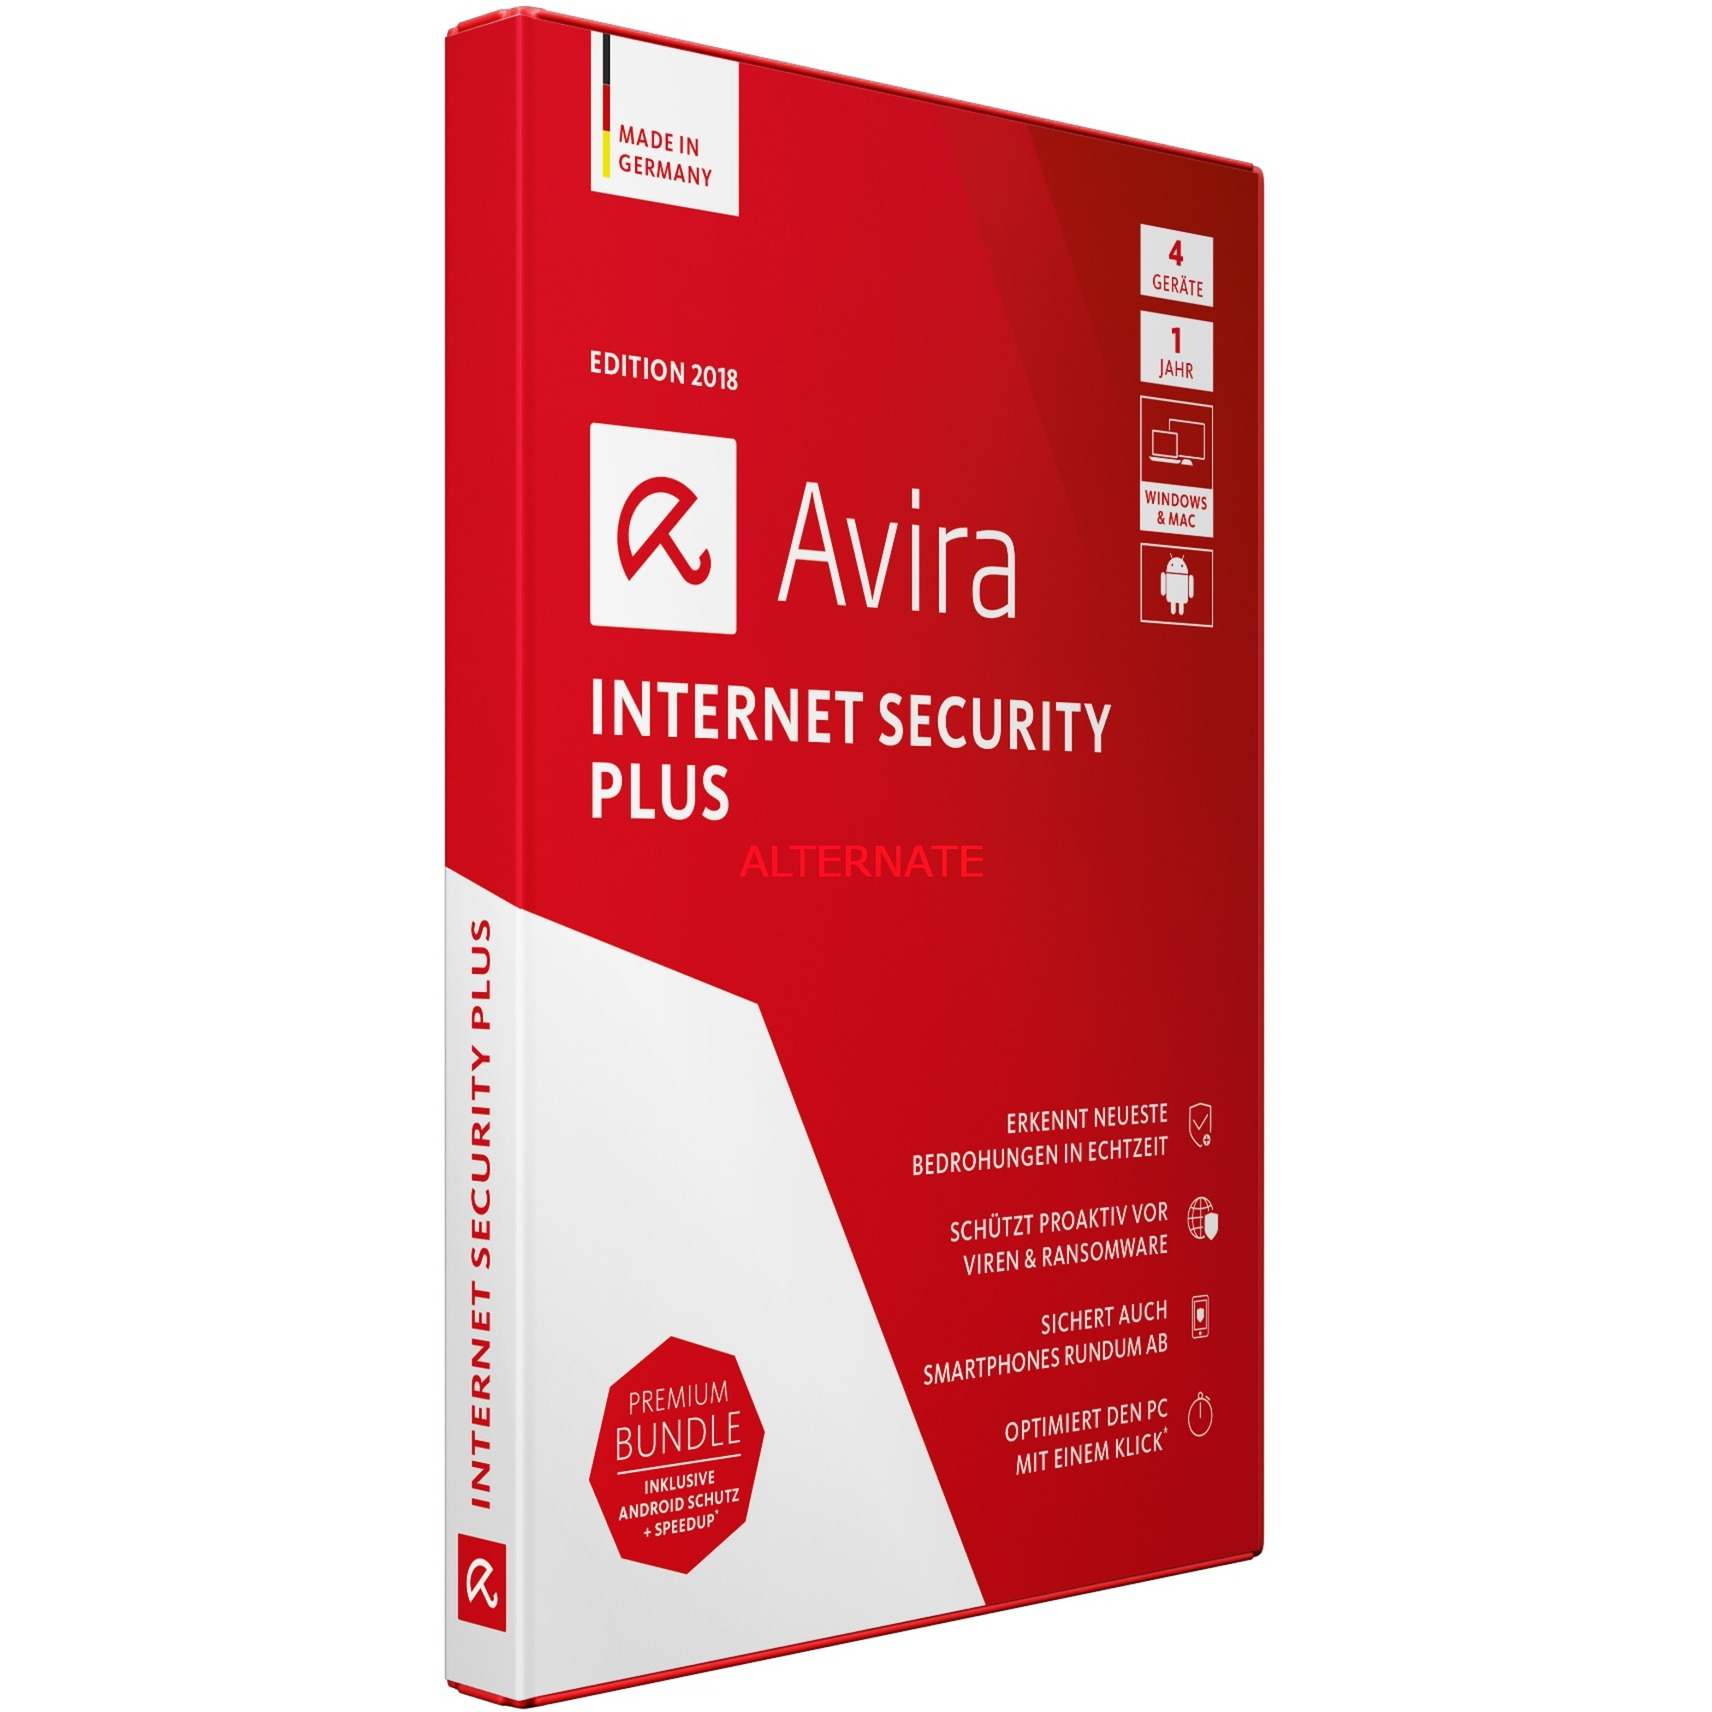 Internet Security Plus 2018 4usuario(s) Full license Alemán, Software